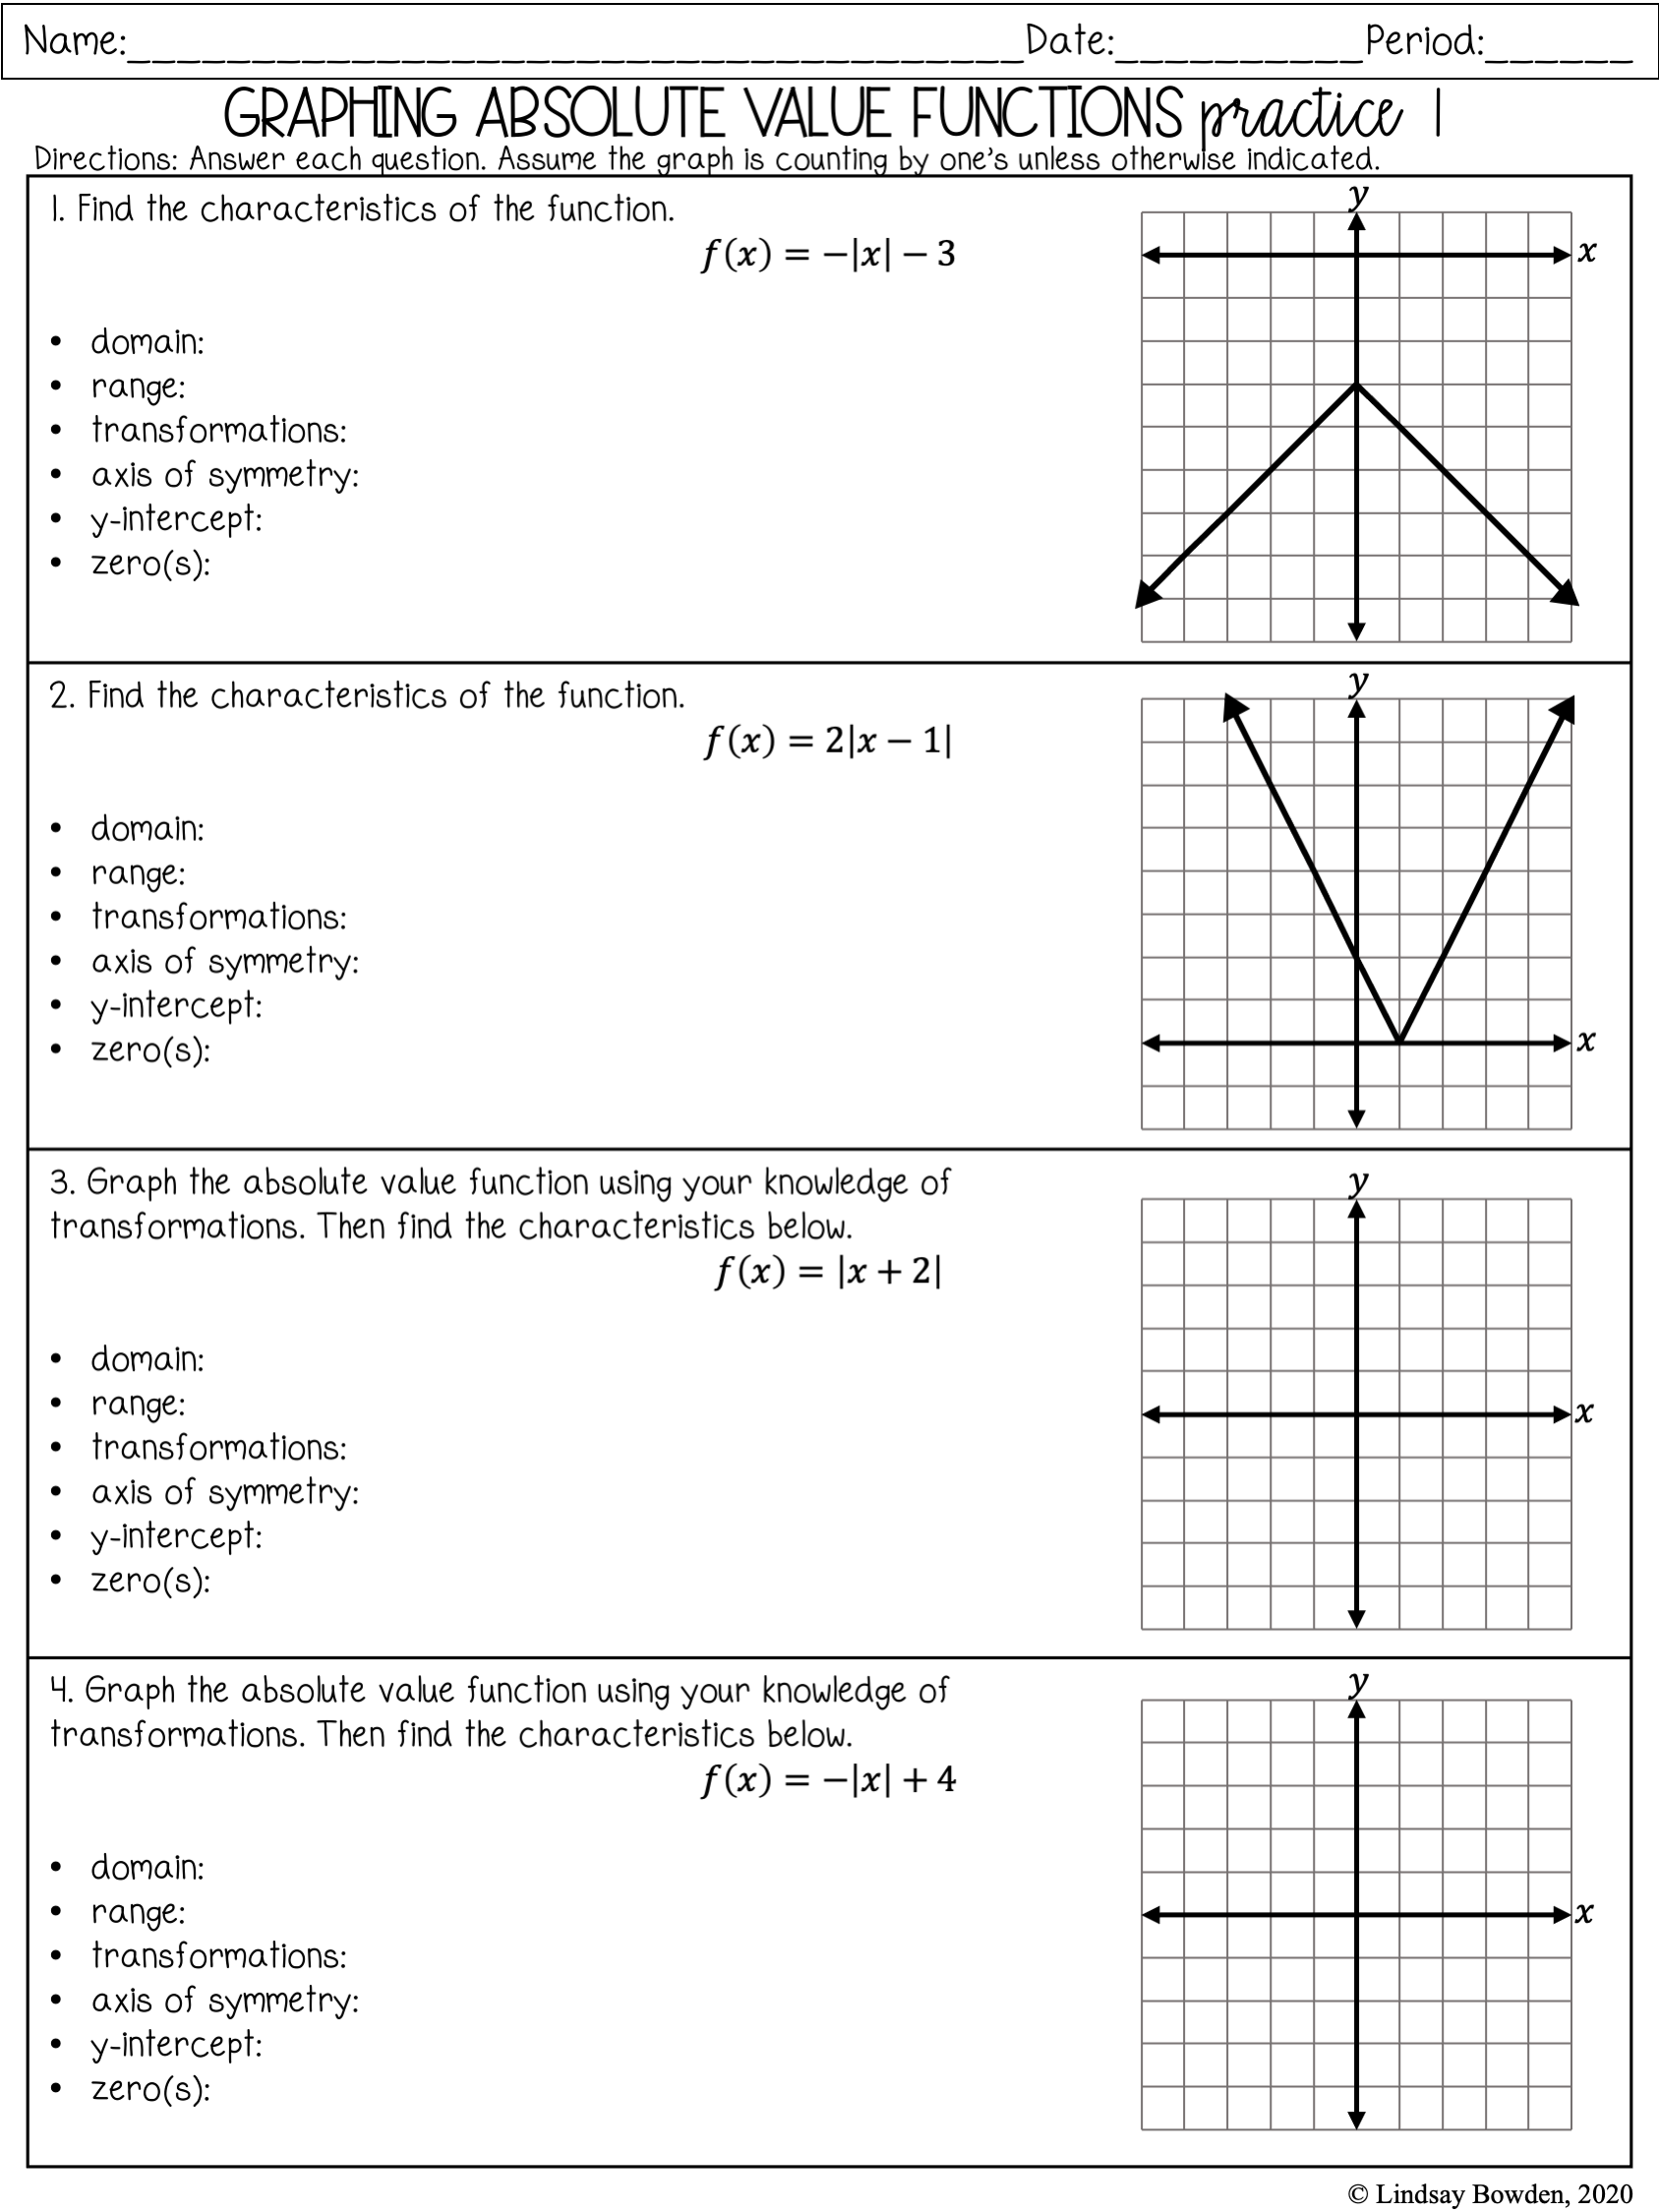 Absolute Value Notes and Worksheets - Lindsay Bowden With Regard To Graphing Absolute Value Functions Worksheet